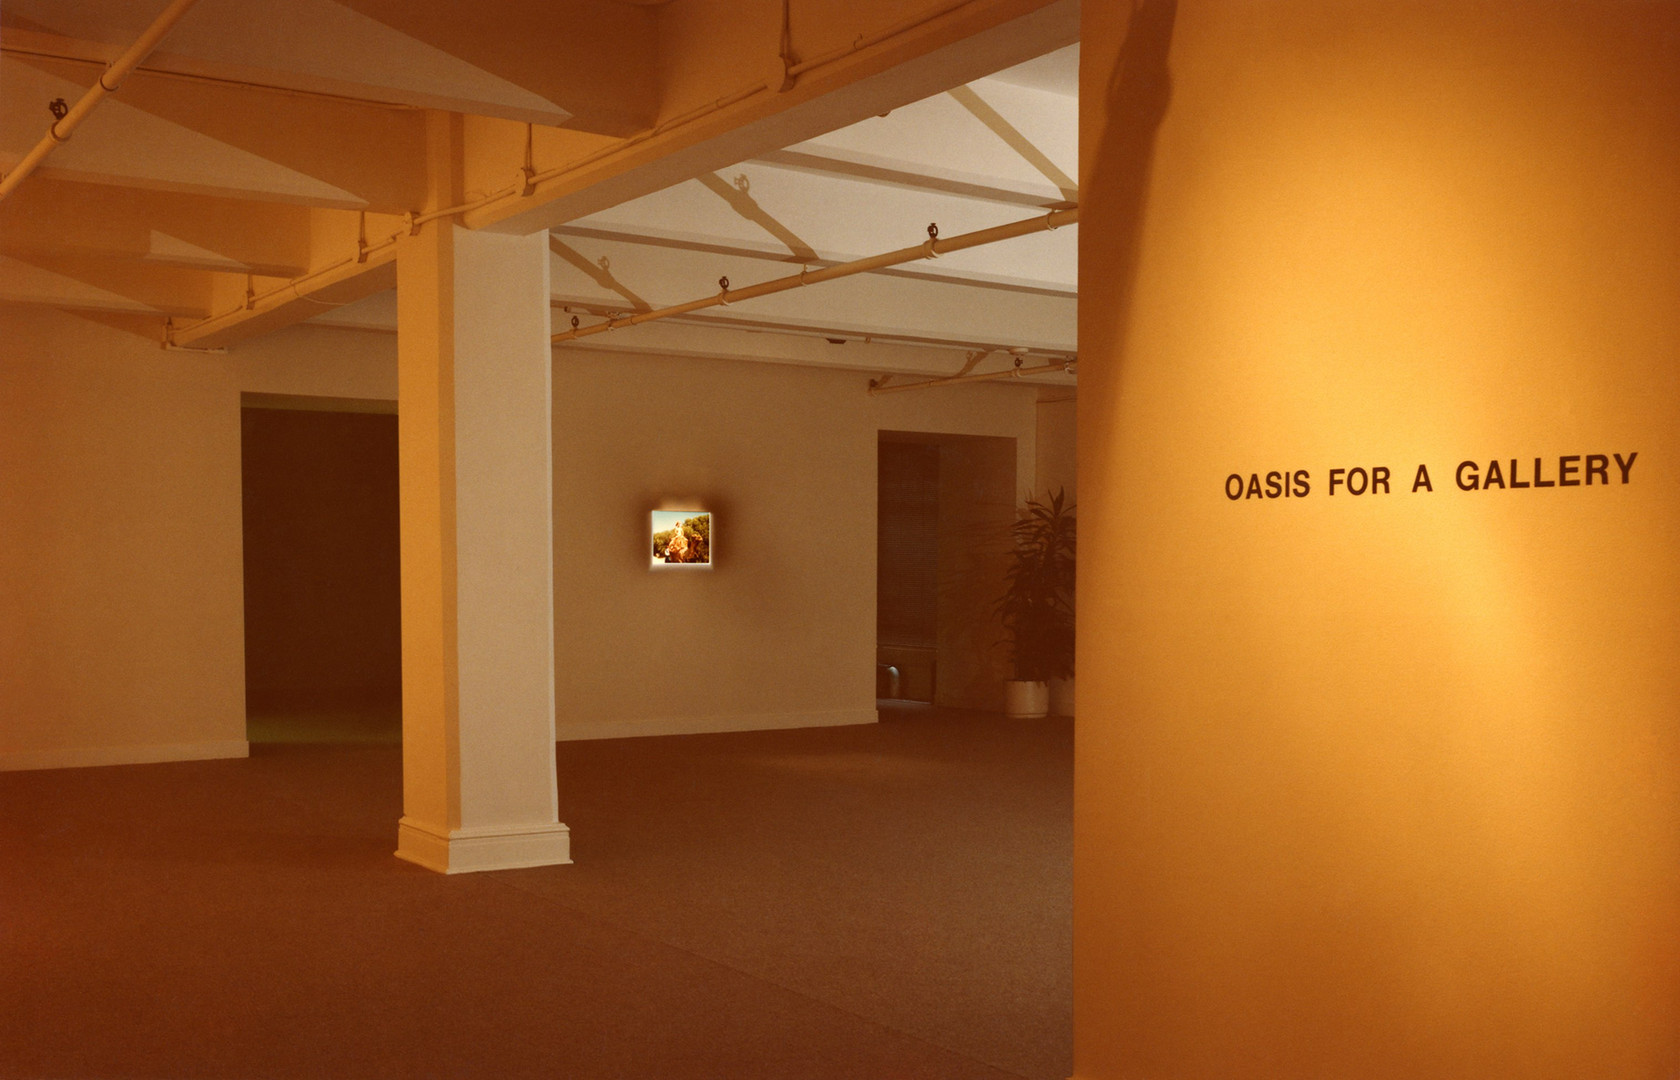 Oasis for a Gallery, Installation